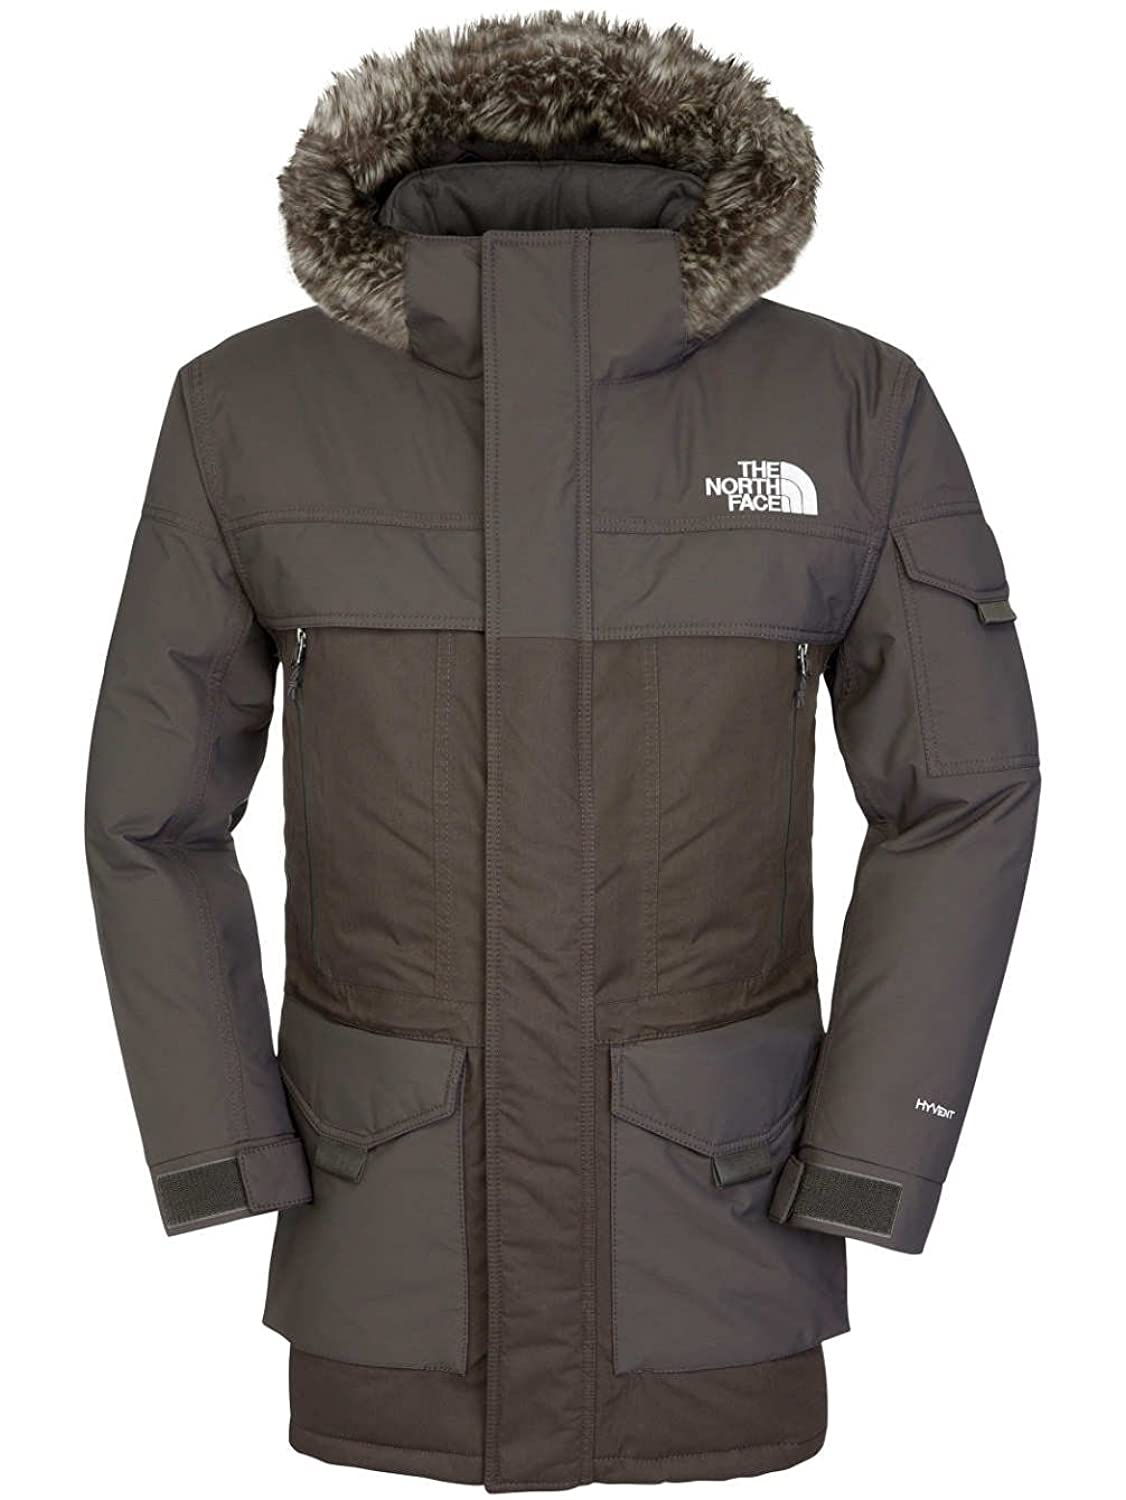 The North Face Jacke bestellen